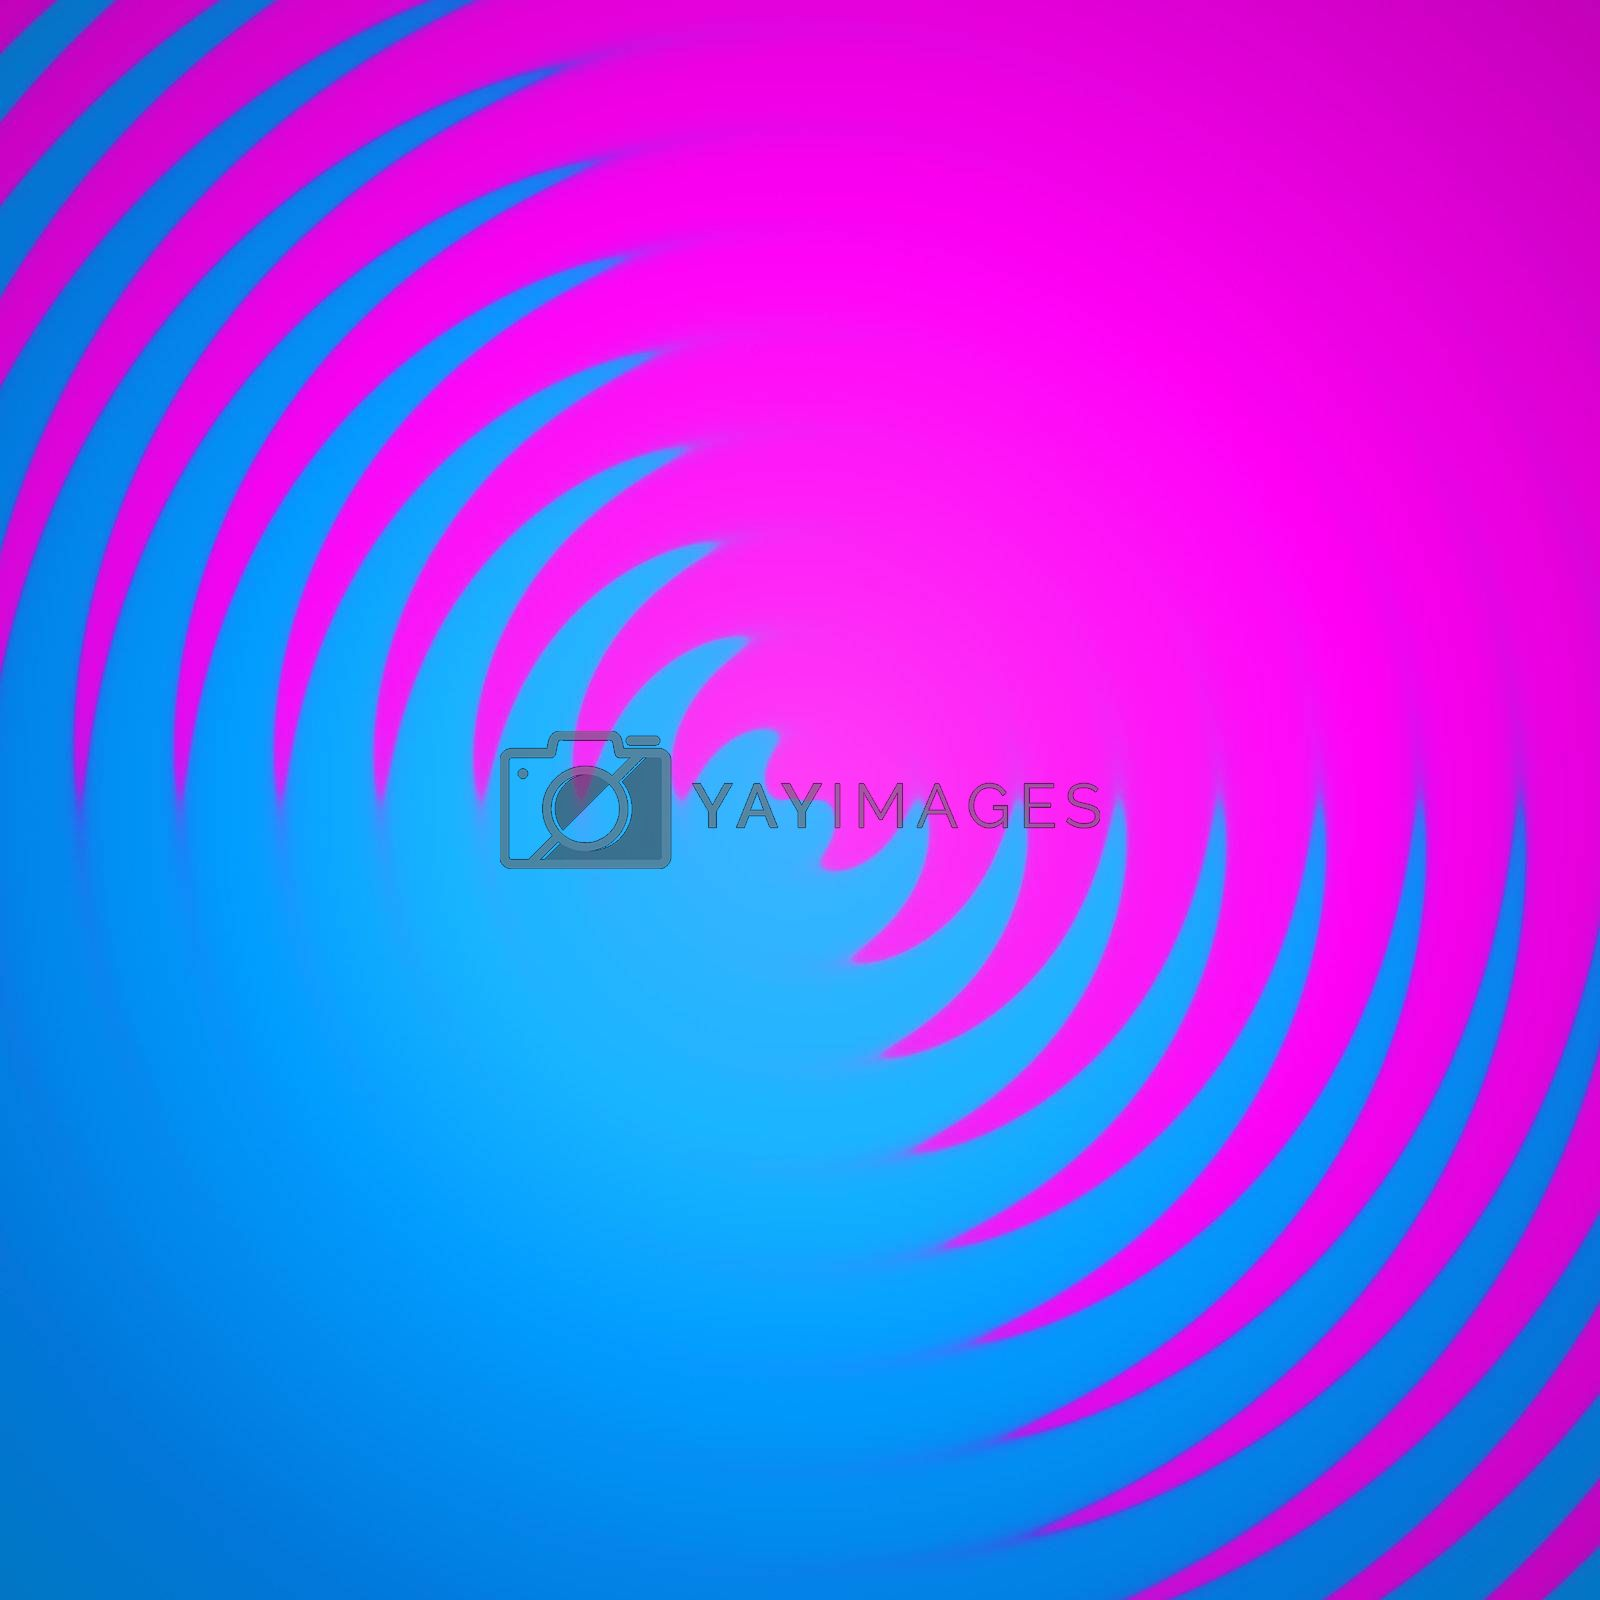 An abstract backdrop with pink and blue colors spiraling together.